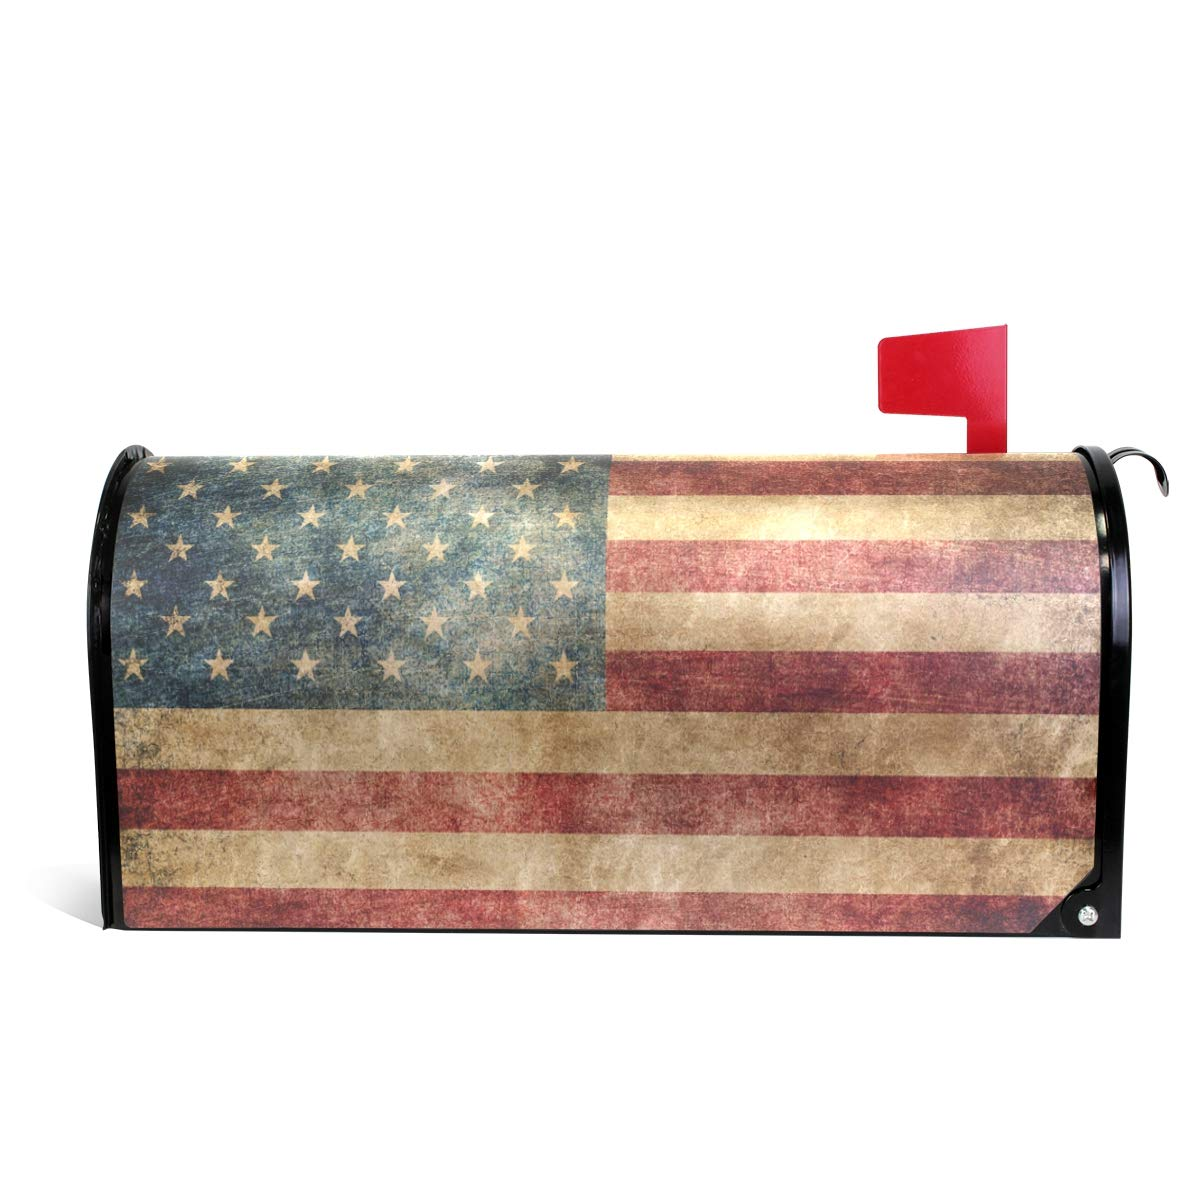 "Naanle Vintage American Flag Magnetic Mailbox Cover, USA Flag Mailbox Wrap Home Decorative for Large Size 25.5""(L) x 20.8""(W)"